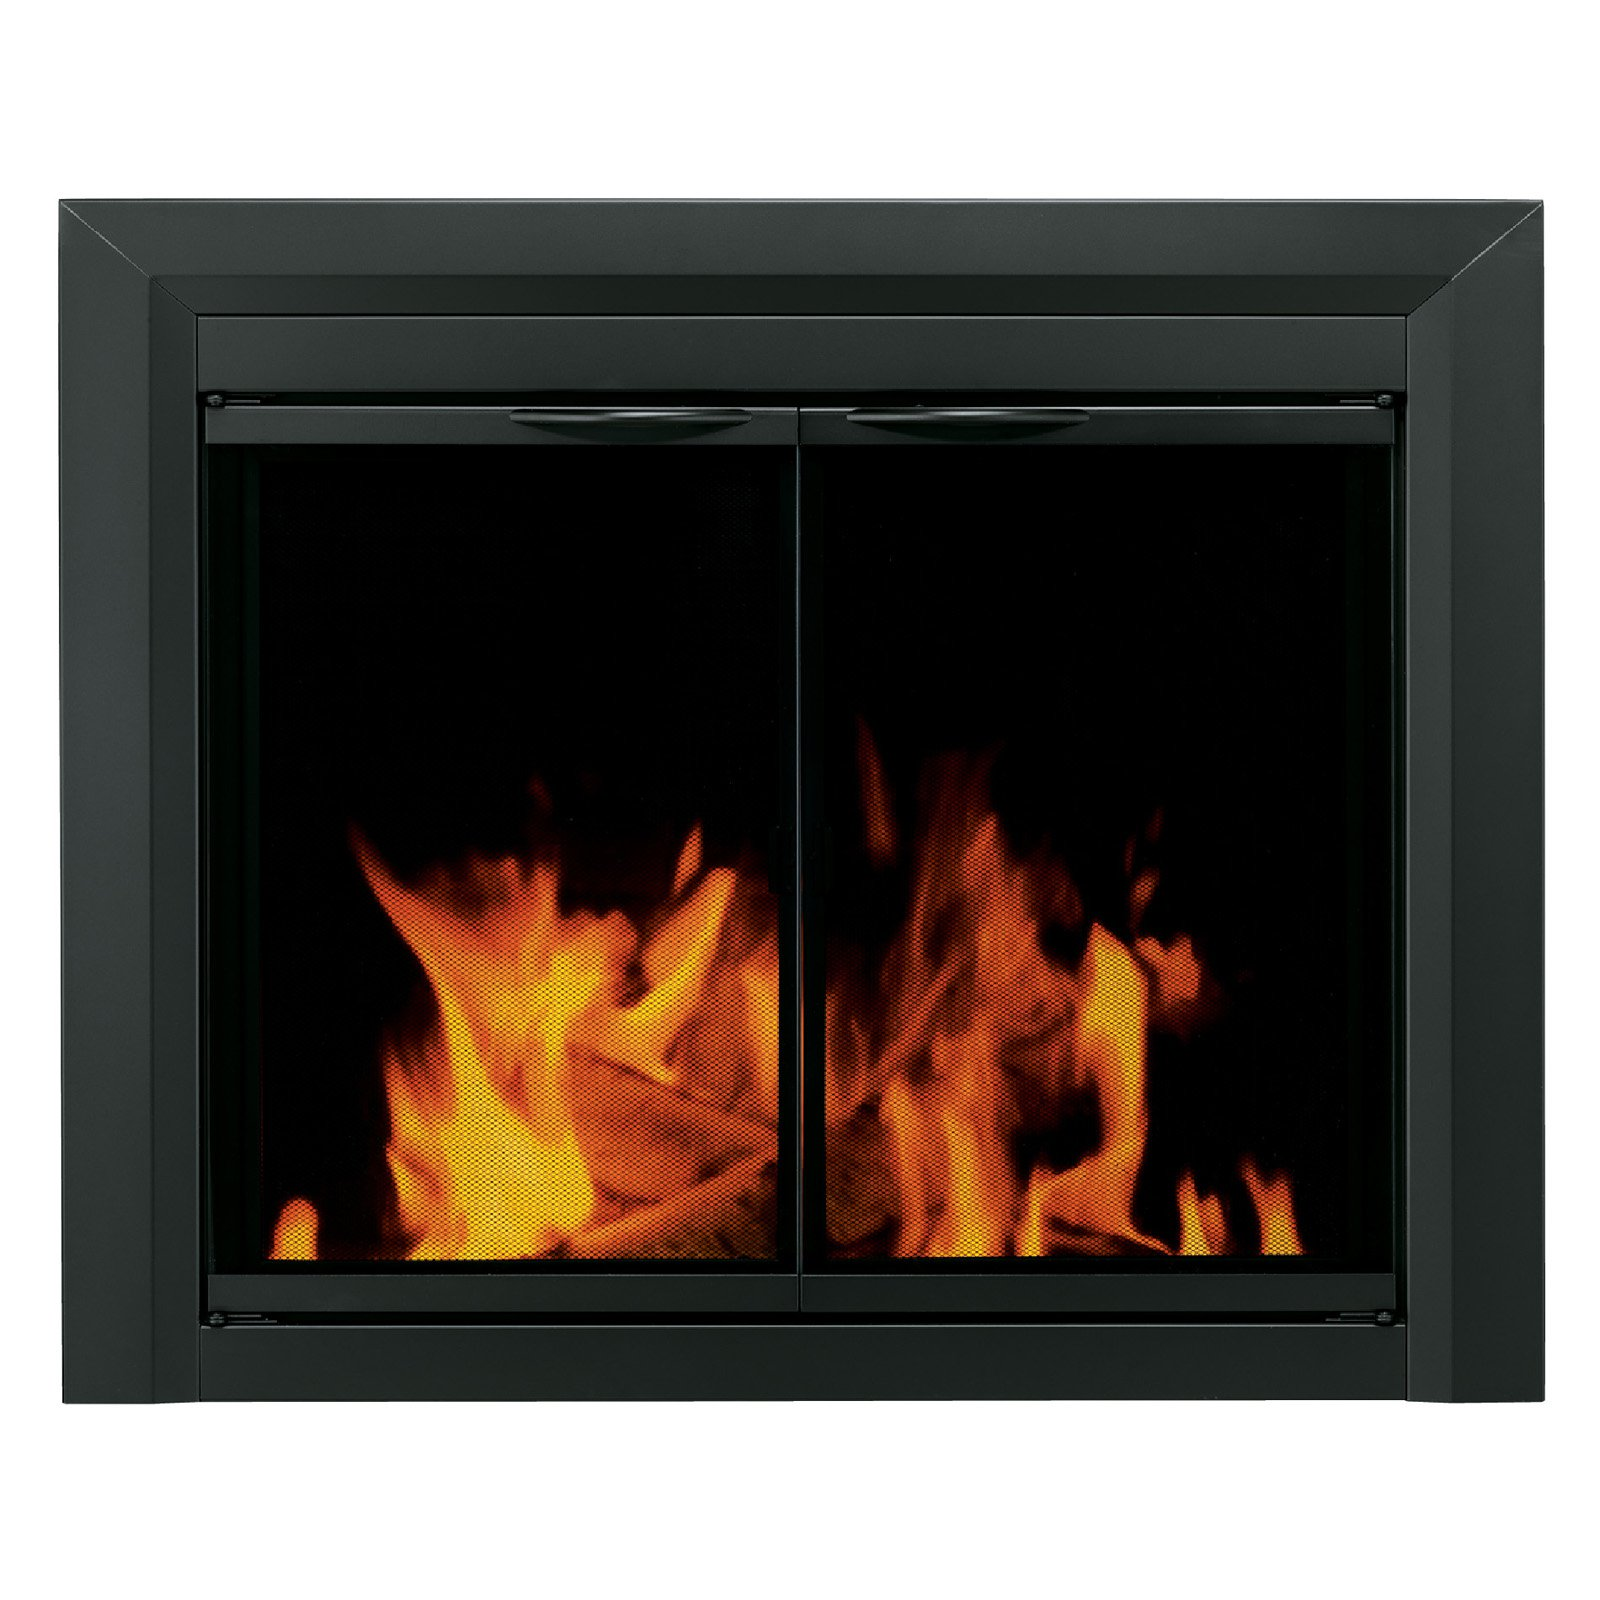 Pleasant Hearth Carlisle Cabinet Fireplace Screen and Smoked Glass Doors - Black